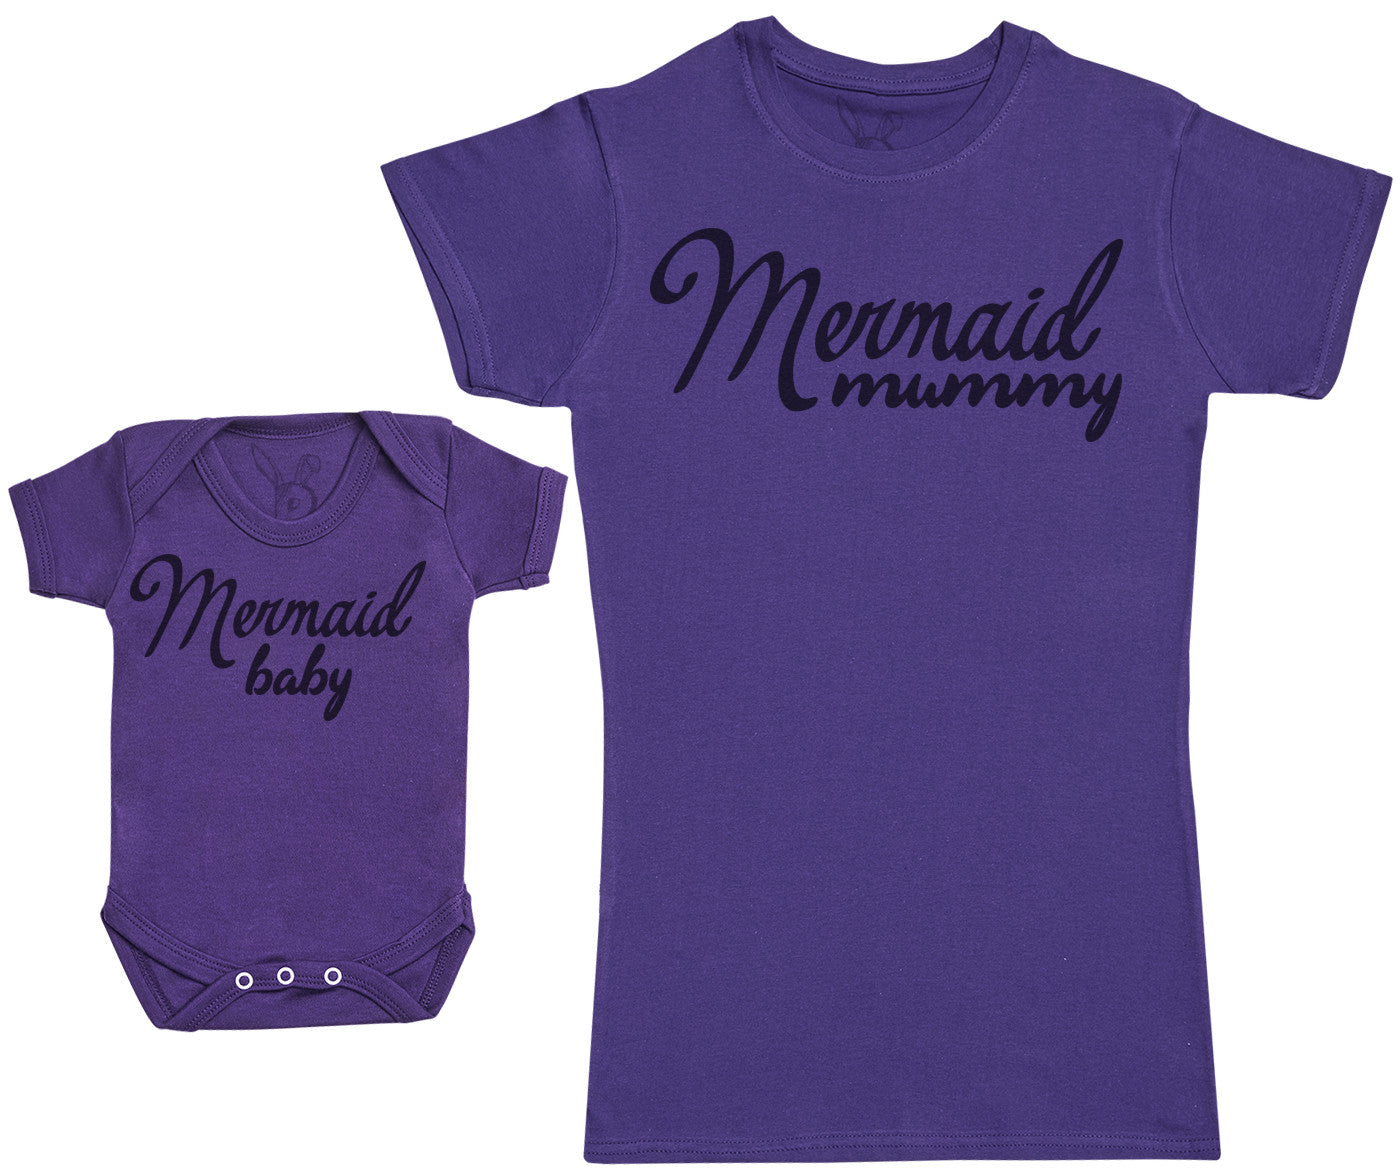 Mermaid Baby - Baby Gift Set with Baby Bodysuit & Mother's T-Shirt